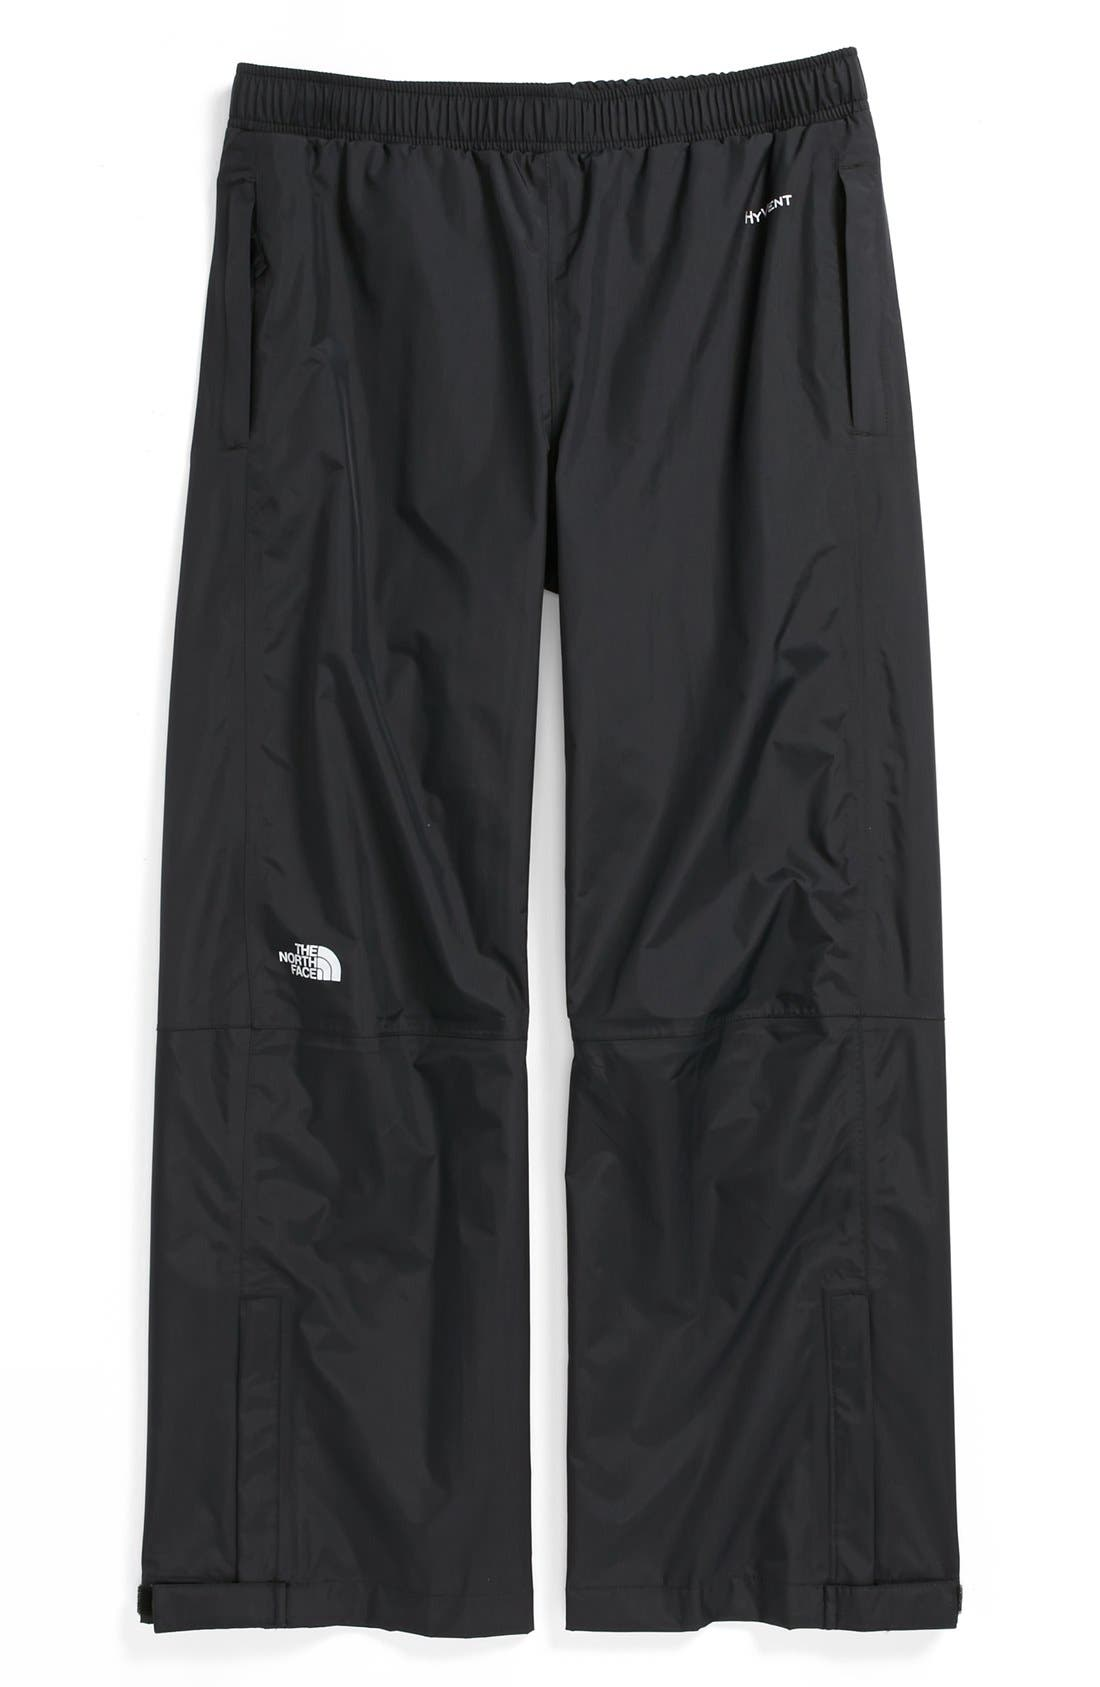 'Resolve' Waterproof Rain Pants,                             Main thumbnail 1, color,                             Black